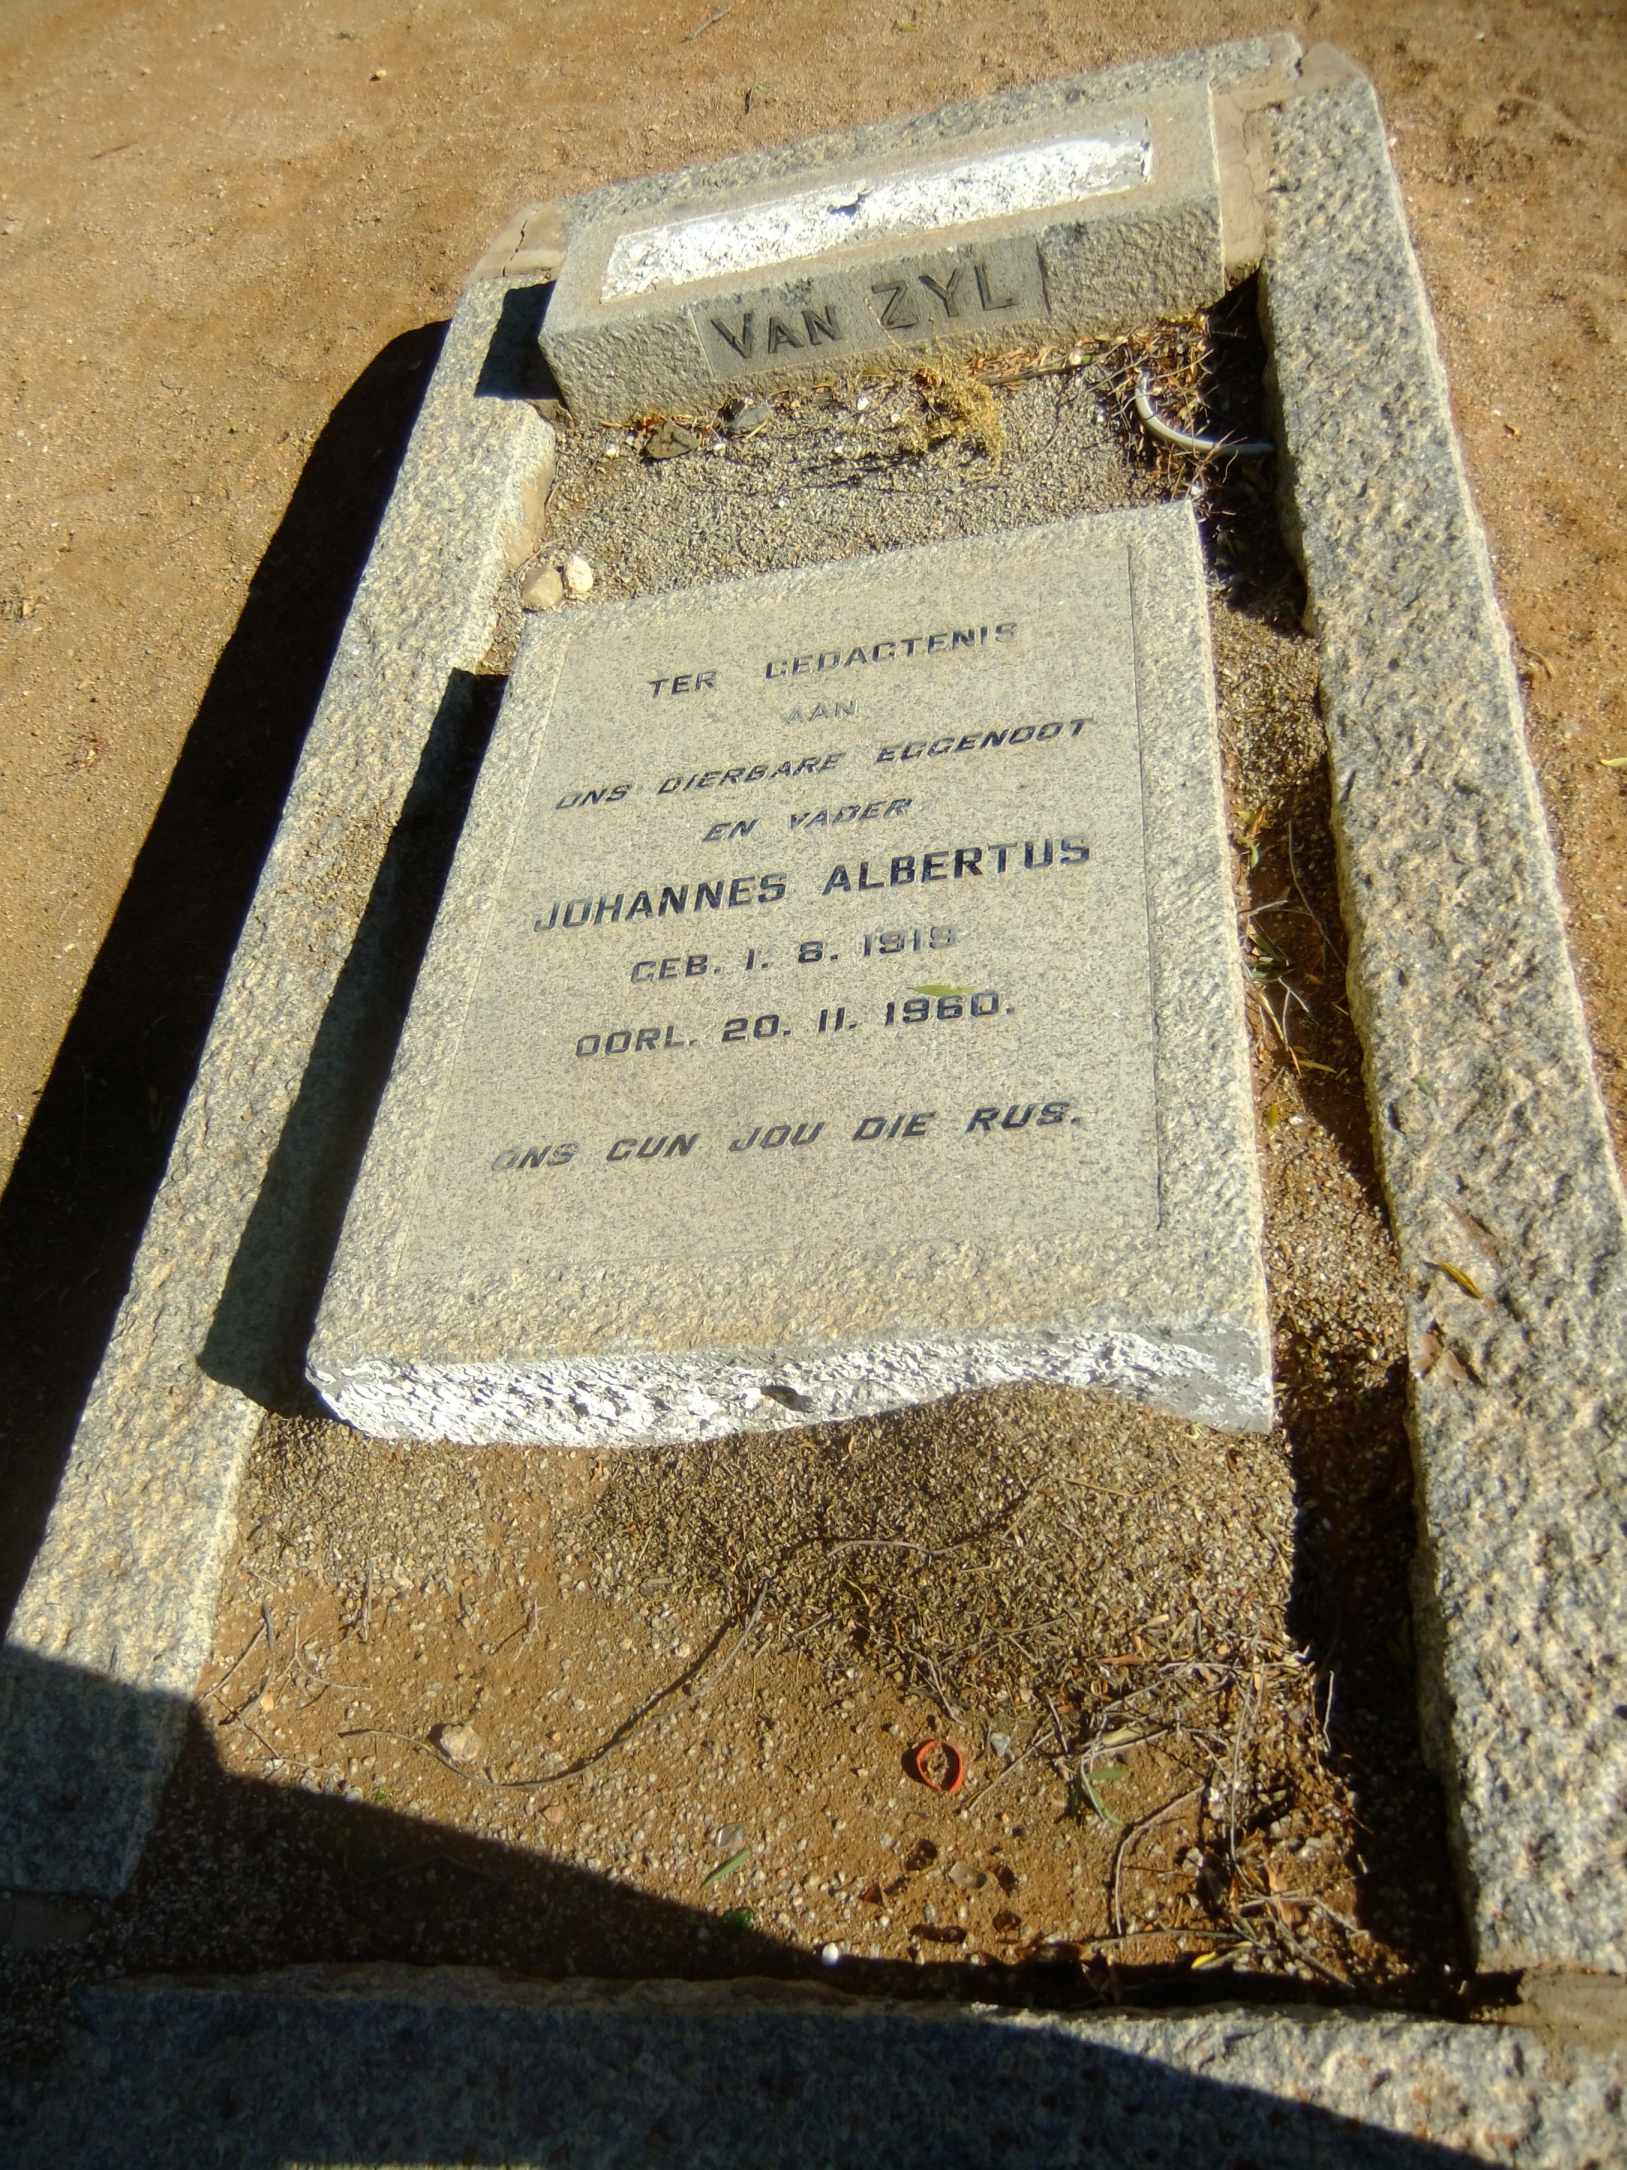 Van Zyl, Johannnes Albertus born 01 August 1919 died 20 November 1960